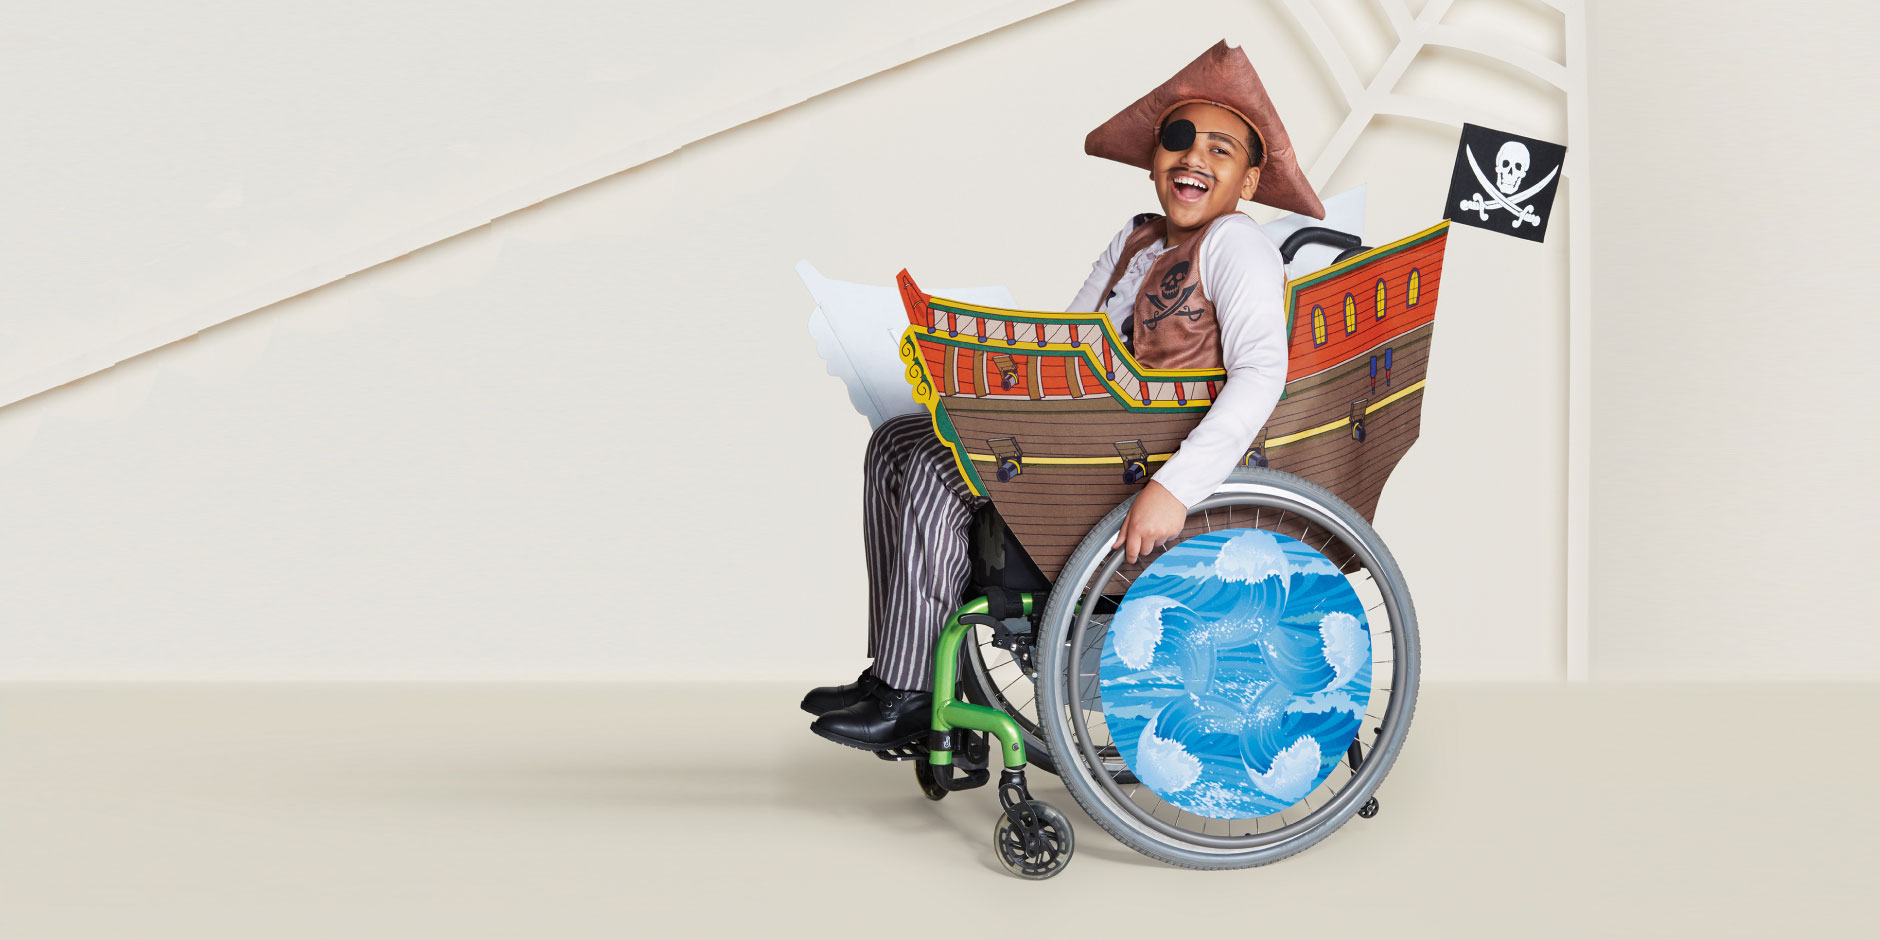 A boy models a pirate costume, his wheel chair decked out like a pirate ship